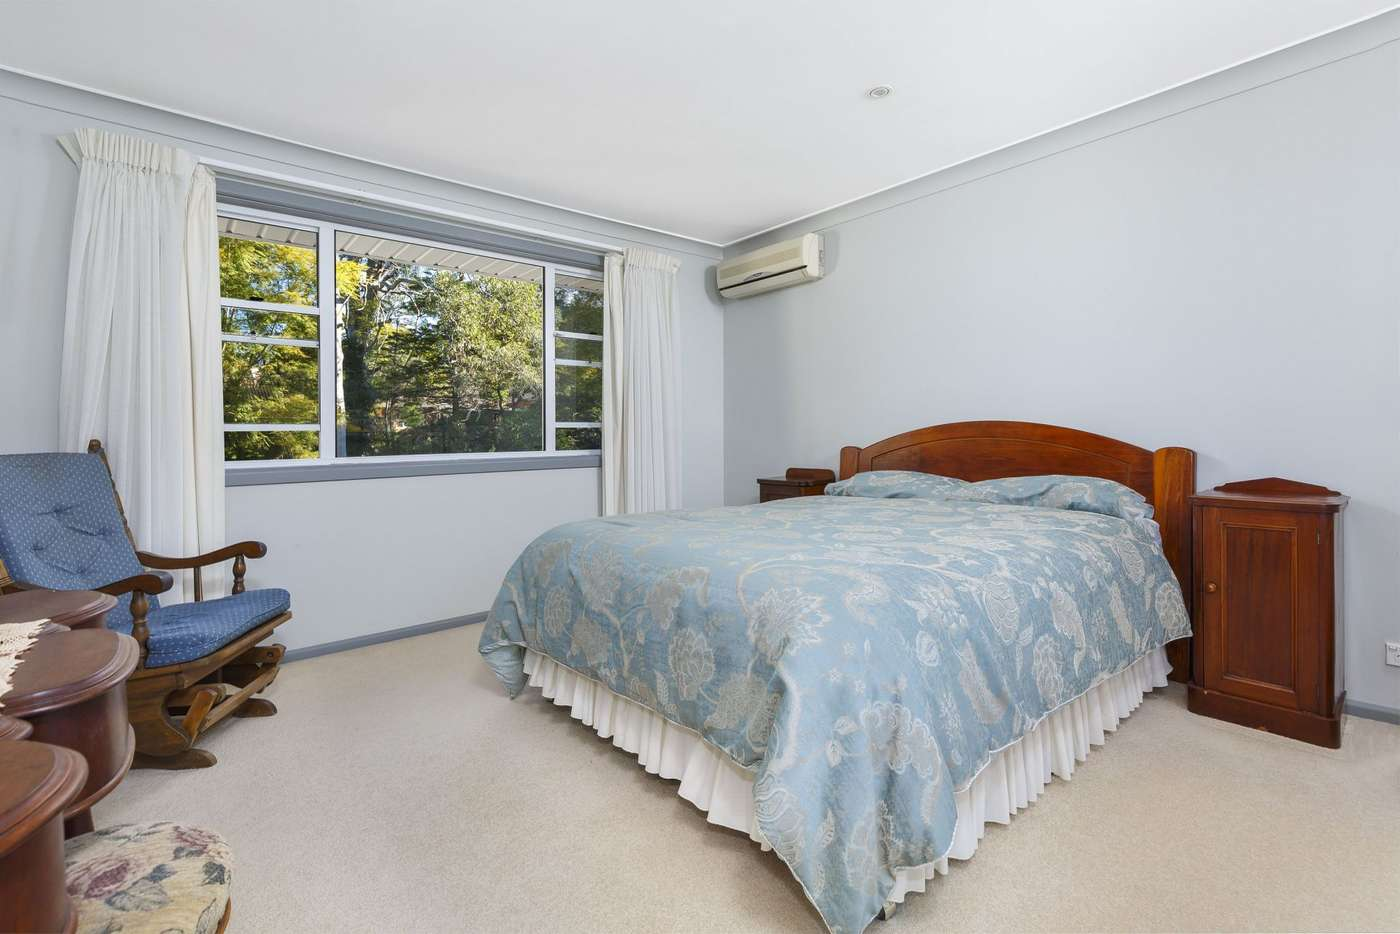 Fifth view of Homely house listing, 11 Harley Crescent, Eastwood NSW 2122